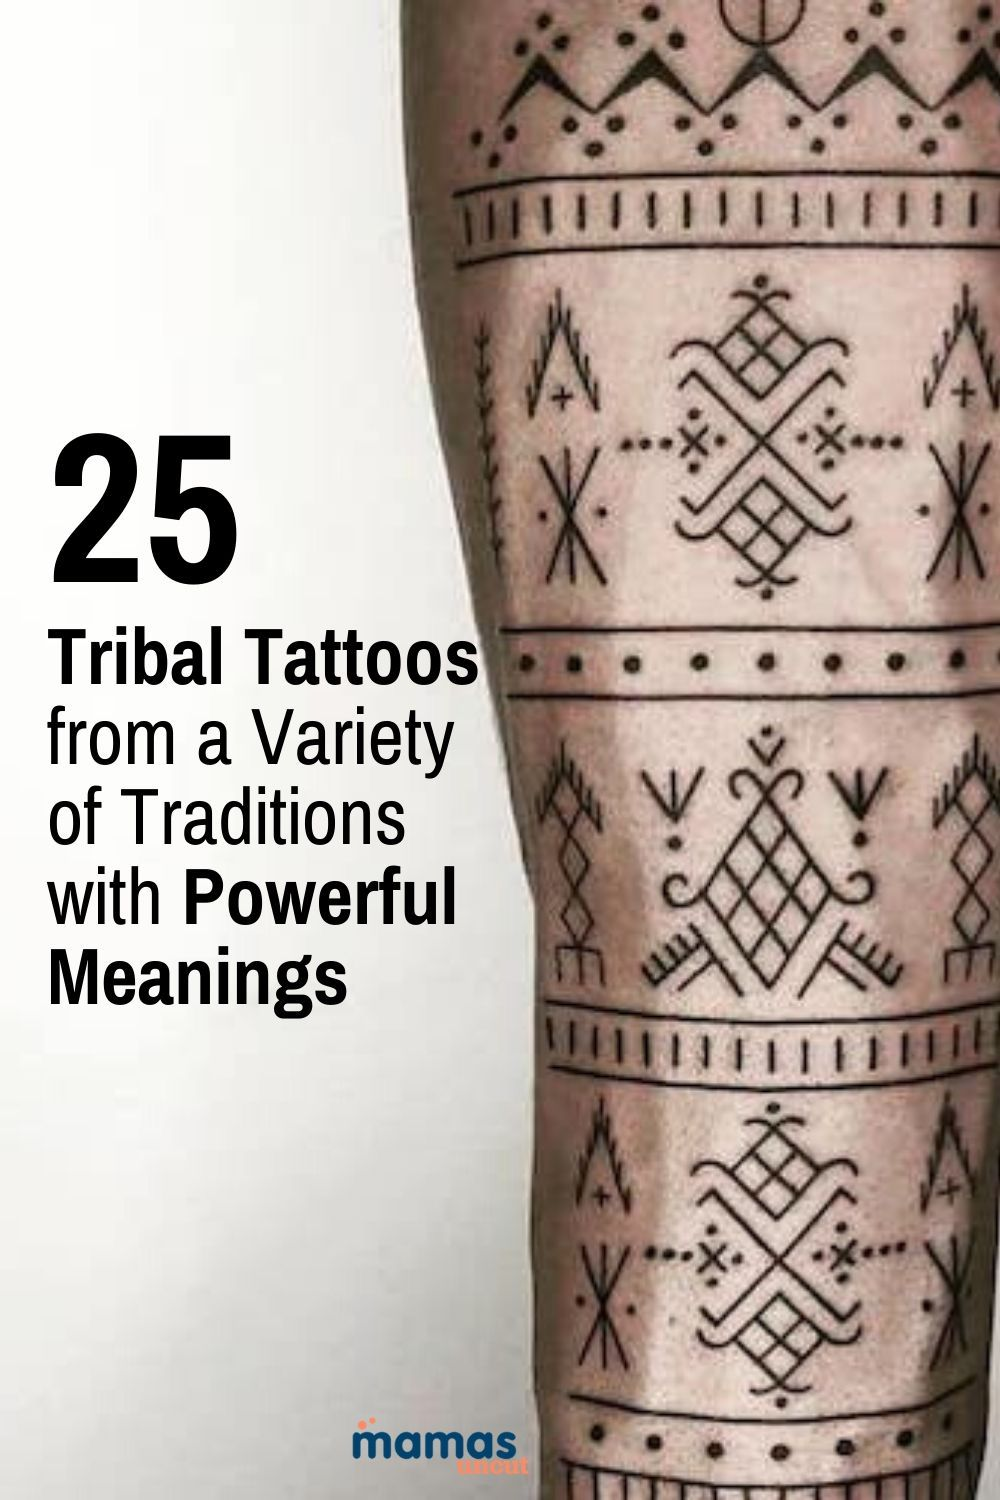 25 Tribal Tattoos from a Variety of Traditions and Places  Tribal tattoos reflect the cultural traditions of a variety of beliefs and values with time-honored practices that incorporate powerful symbols and designs.  #tattoos #polynesian #samoan #tribaltattoos